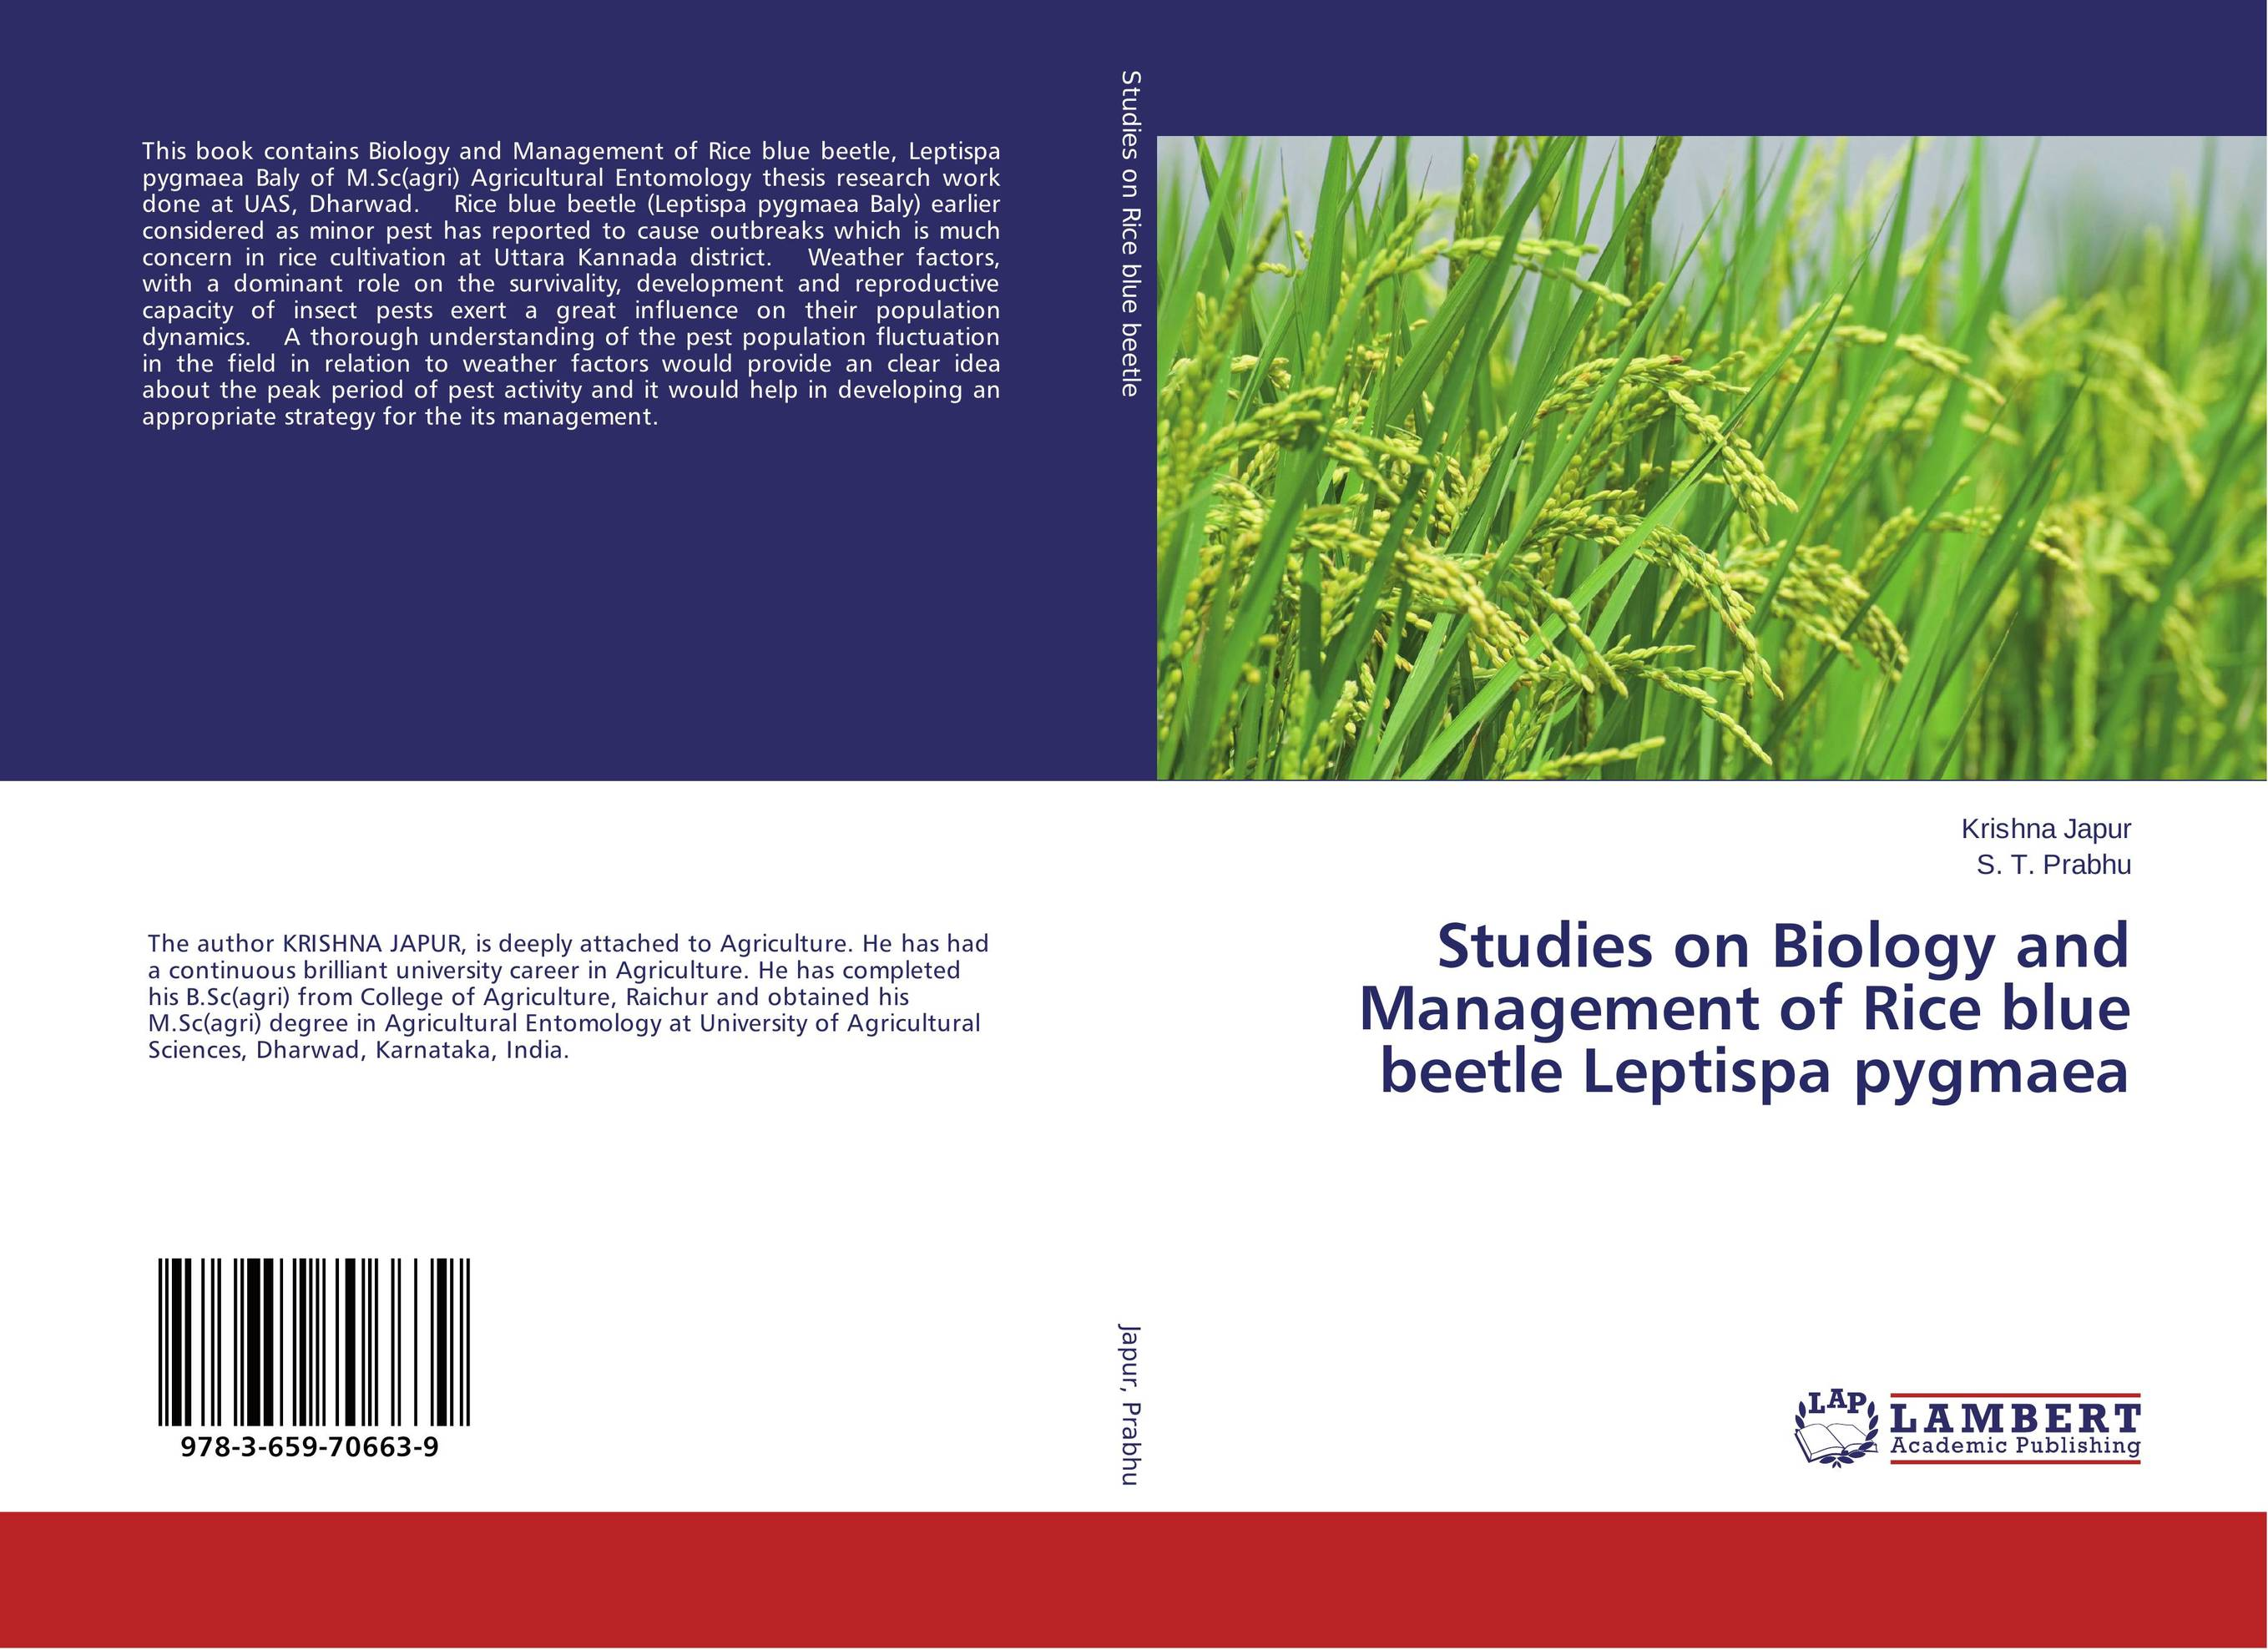 Studies on Biology and Management of Rice blue beetle Leptispa pygmaea common tern its breeding biology and social